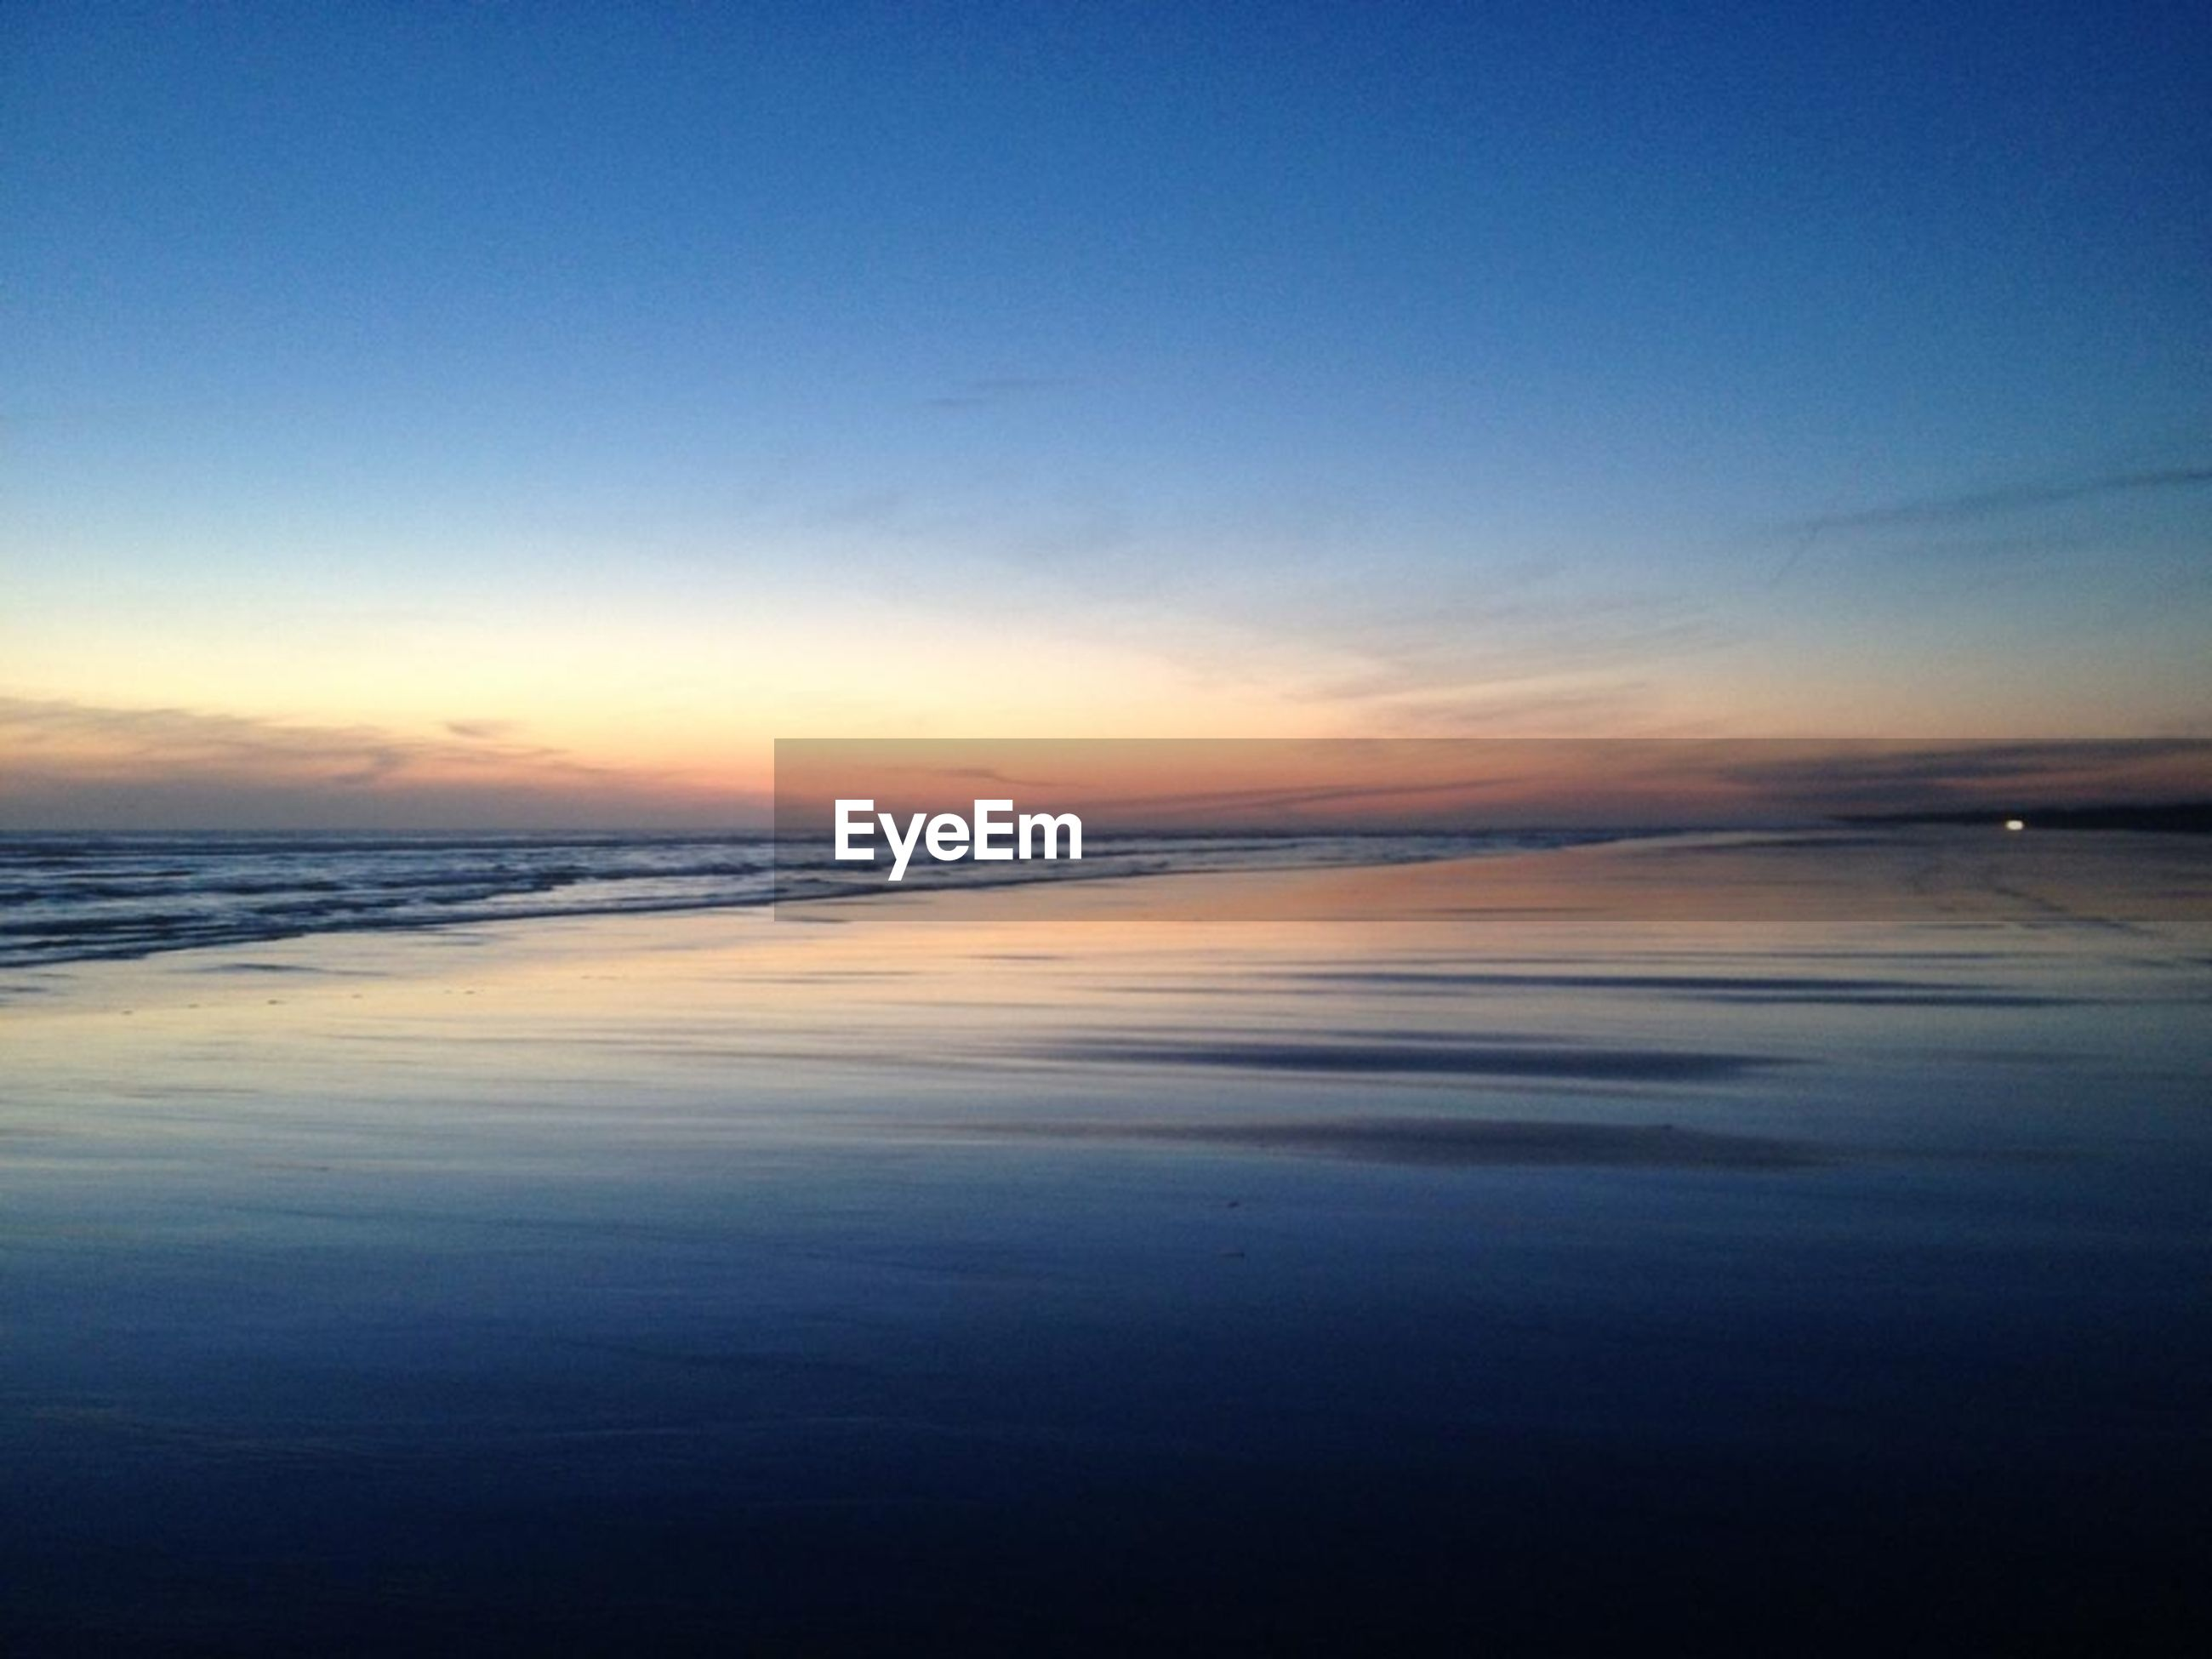 sea, water, scenics, horizon over water, tranquil scene, beauty in nature, beach, sunset, tranquility, sky, shore, nature, idyllic, reflection, wave, blue, copy space, sand, dusk, outdoors